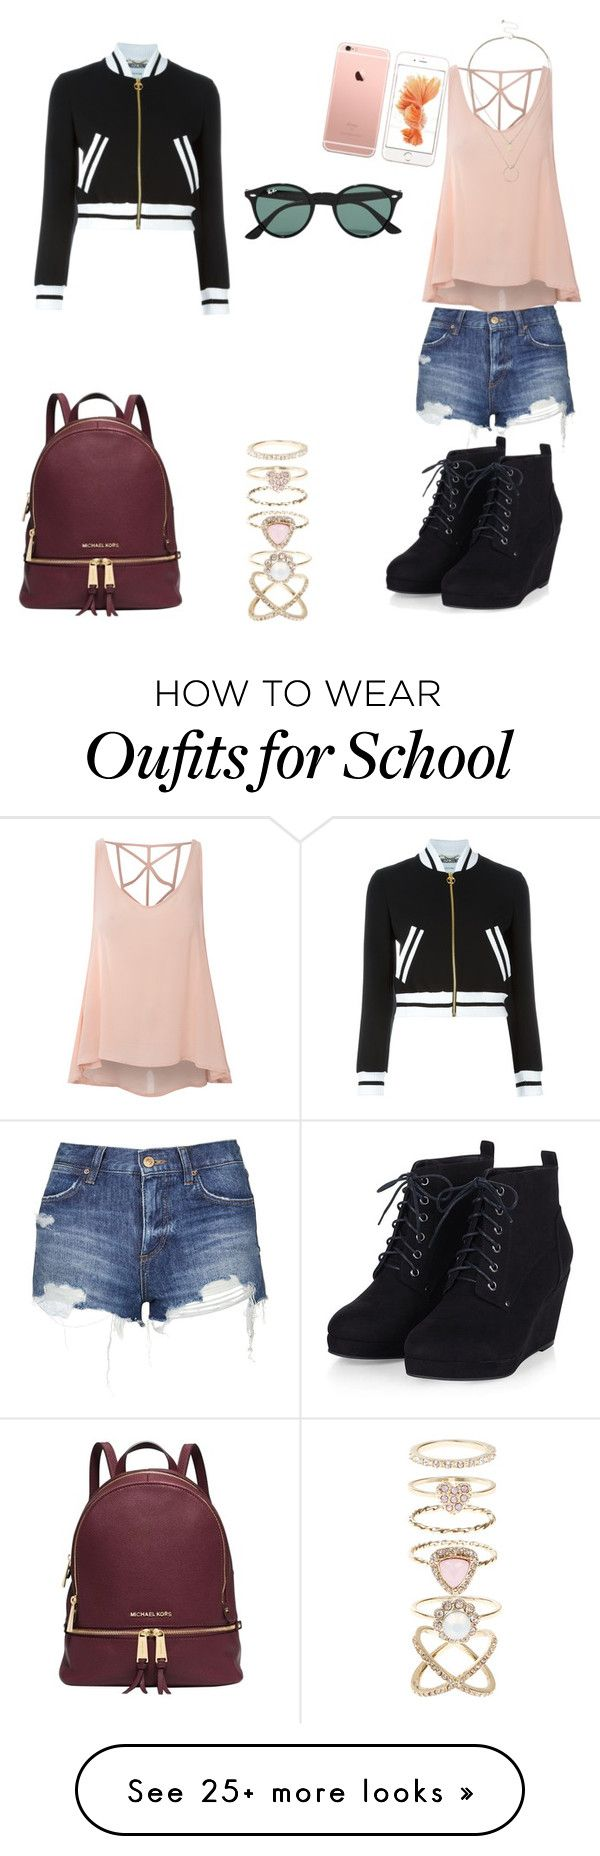 """""""Back to school"""" by hana-hvas on Polyvore featuring Moschino, Glamorous, Topshop, Michael Kors, Ray-Ban, Accessorize, Sole Society, women's clothing, women and female"""